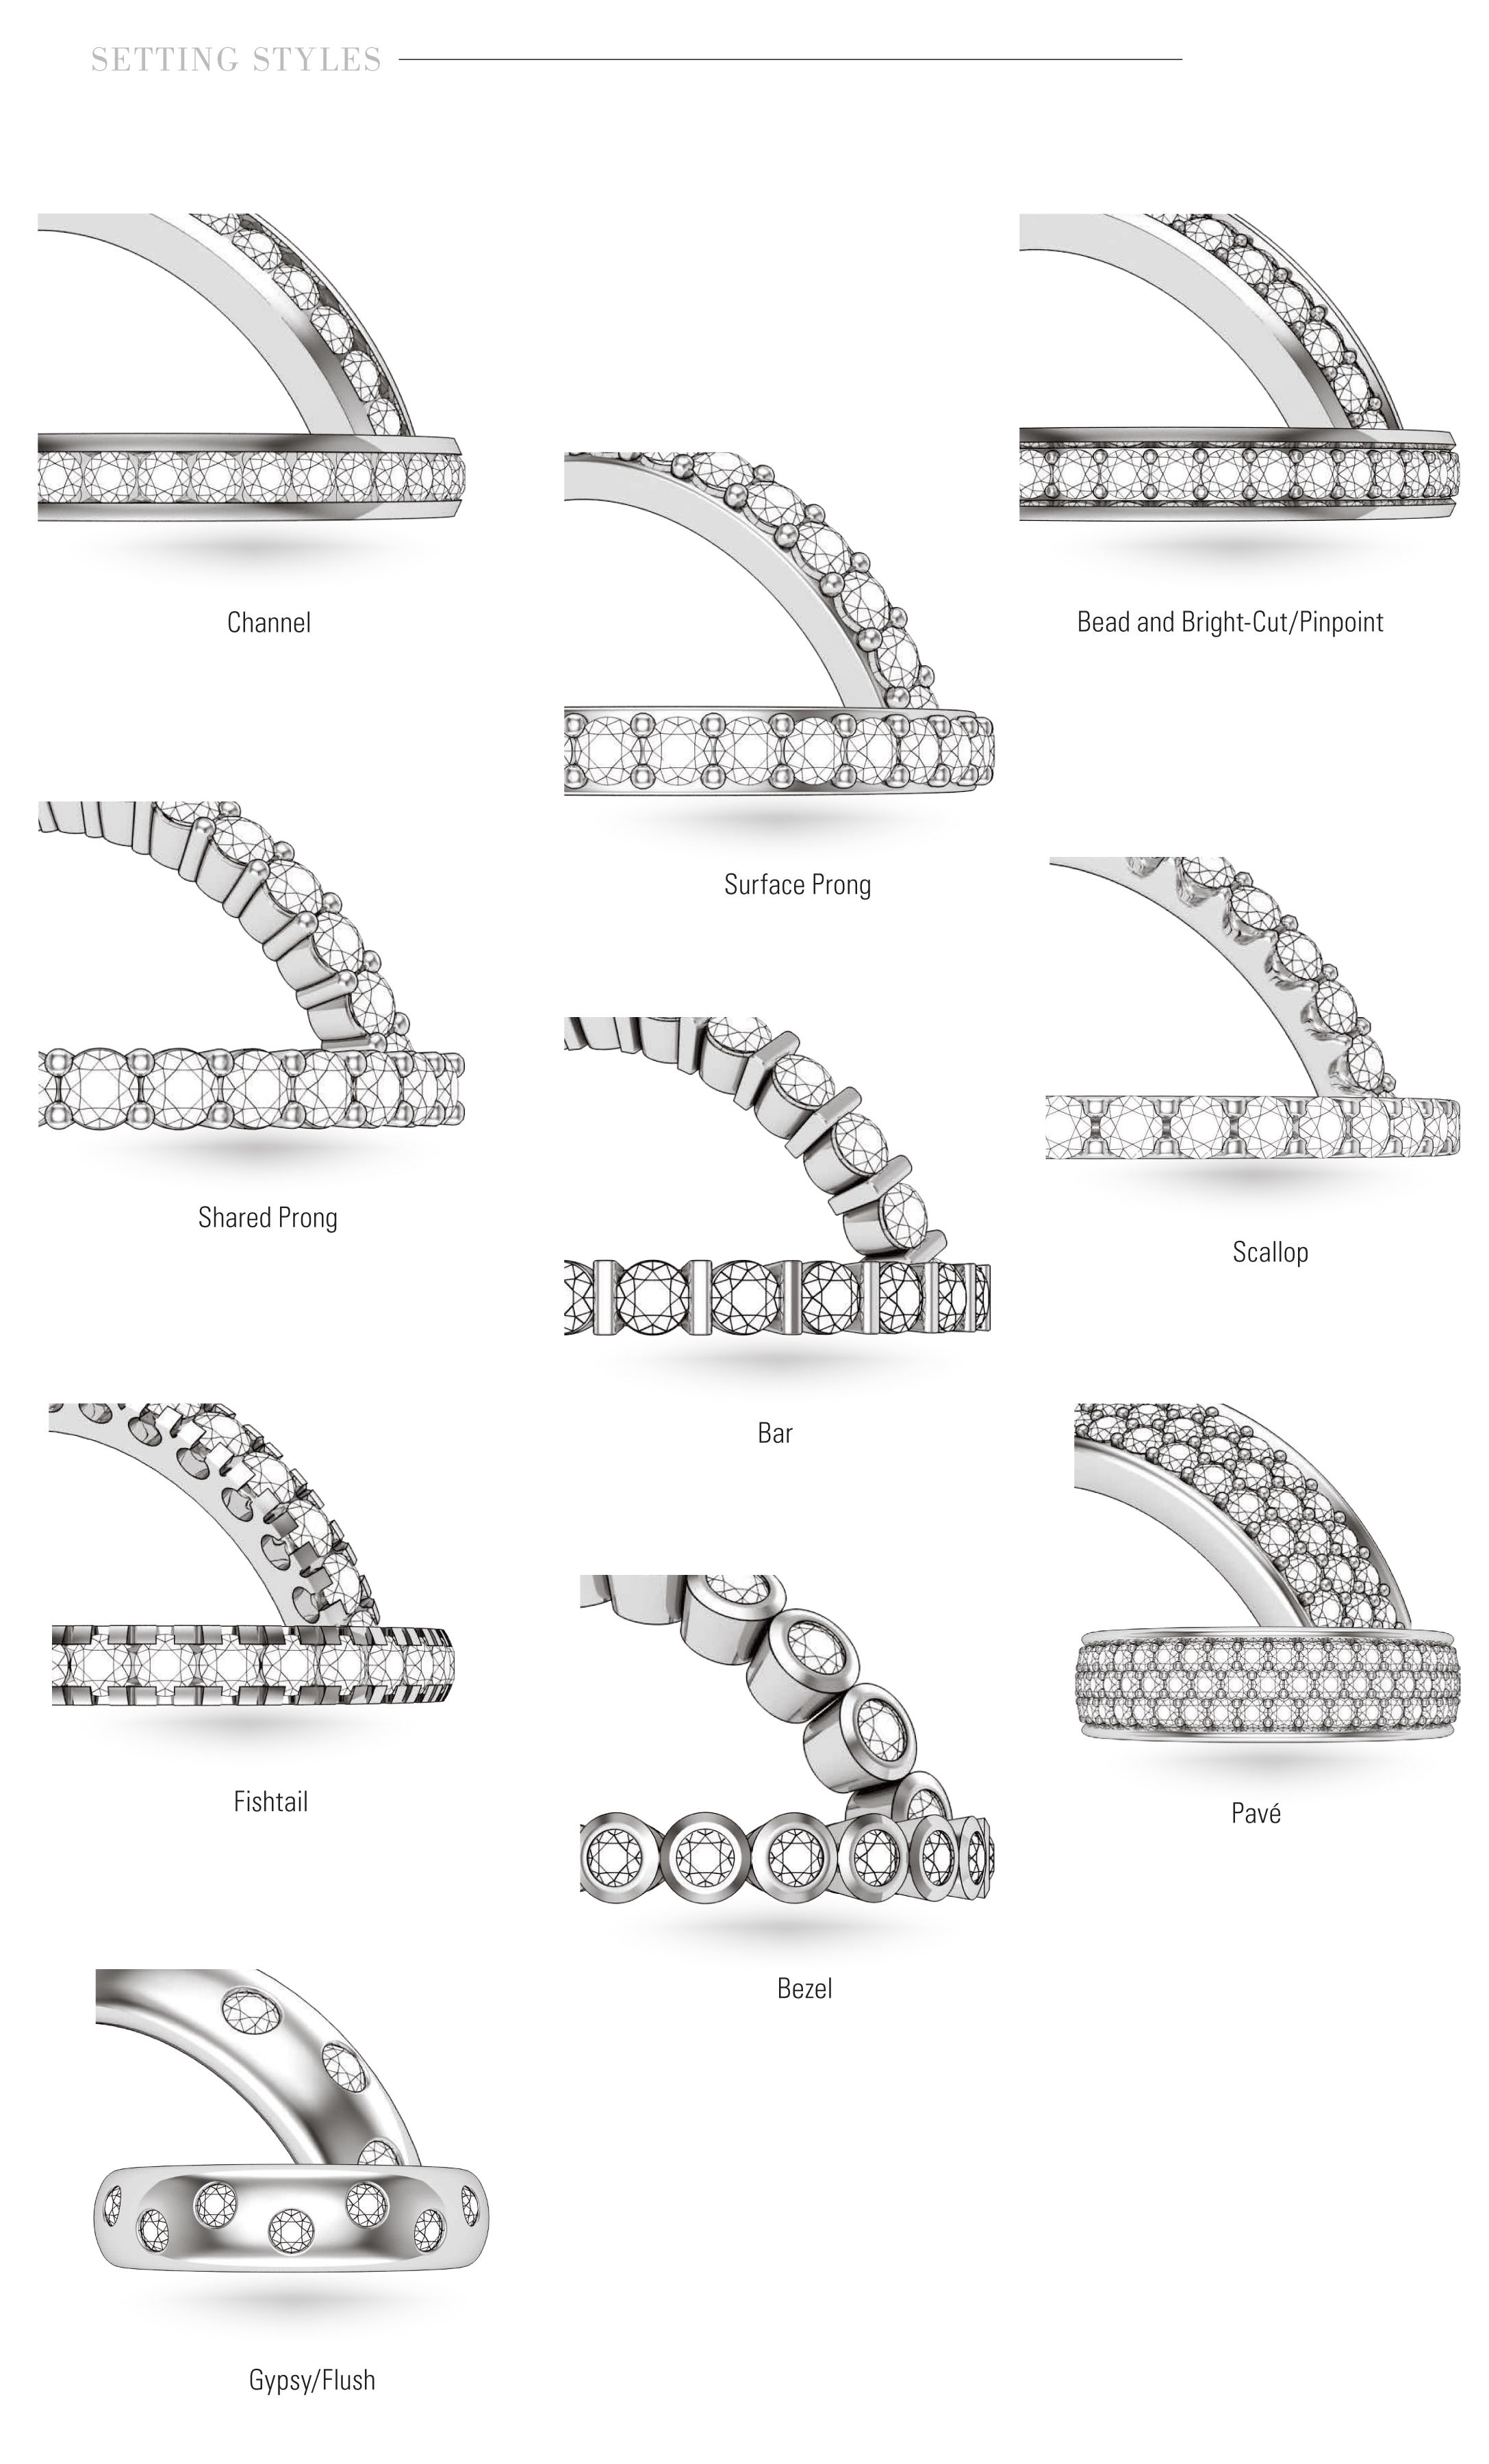 wedding ring types glance at different ways for accent gems to be set 1005